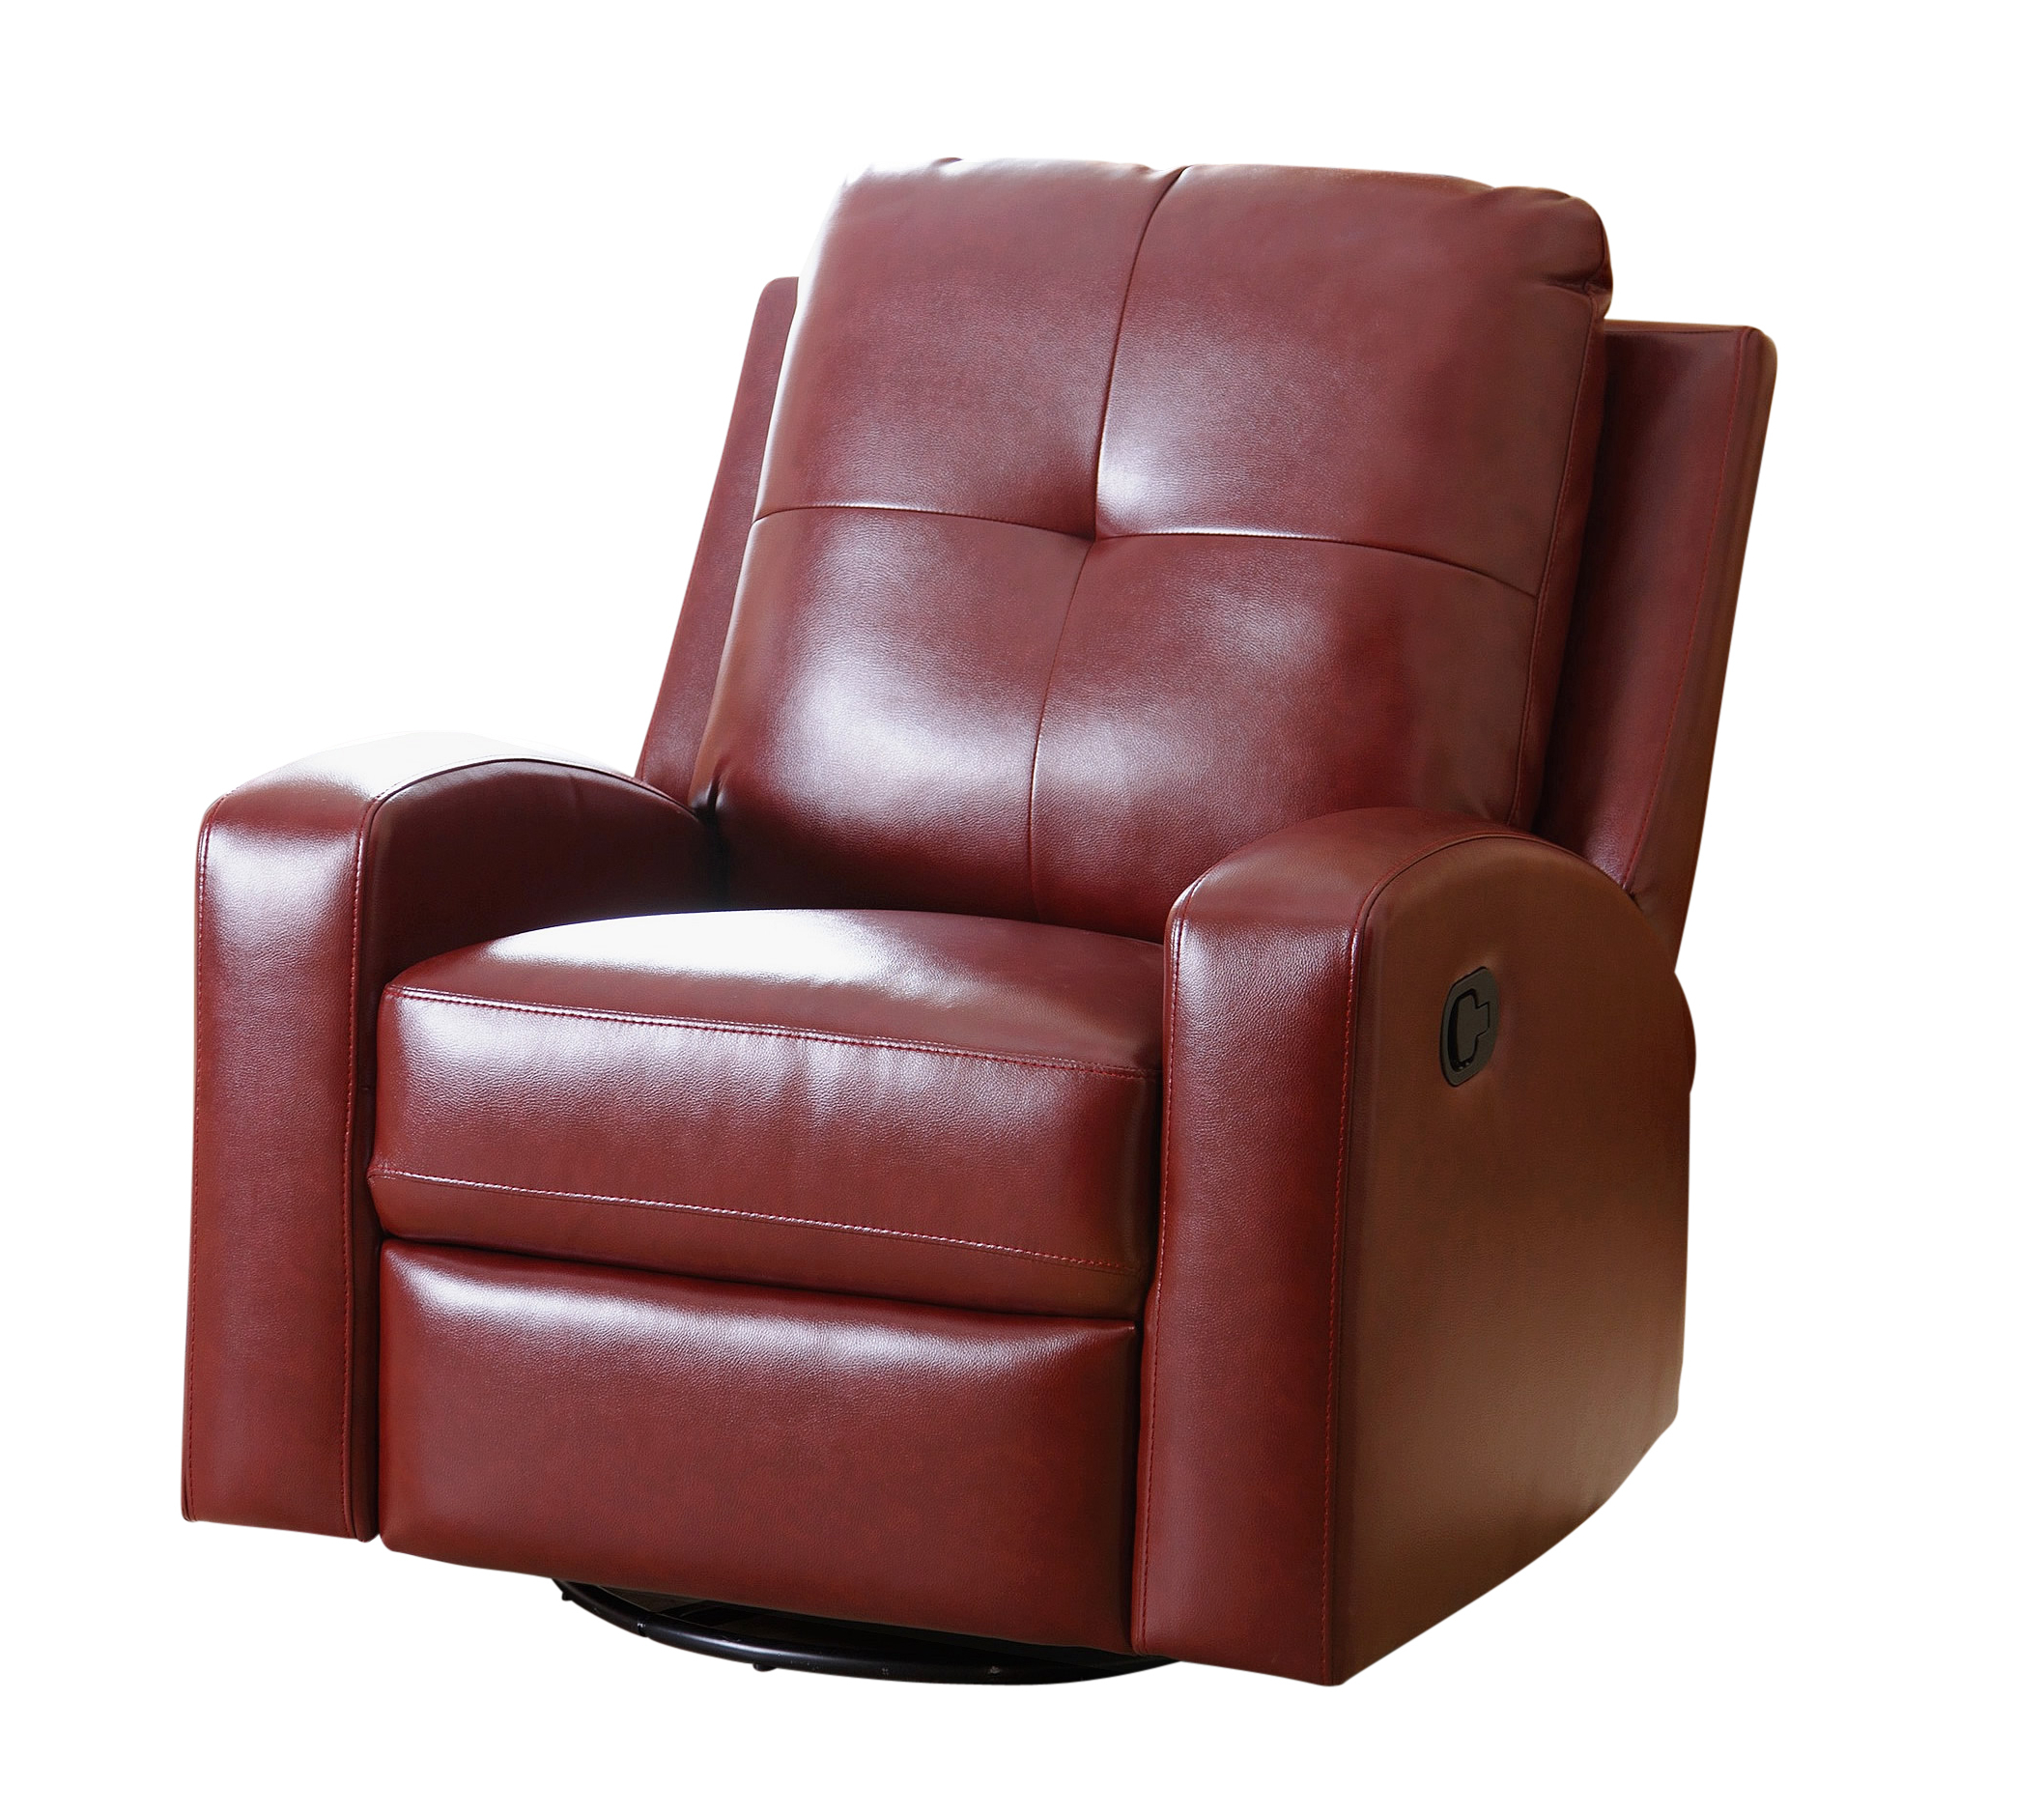 Most Recent Katrina Swivel Glider Recliner, Red – Walmart With Katrina Beige Swivel Glider Chairs (Gallery 19 of 20)